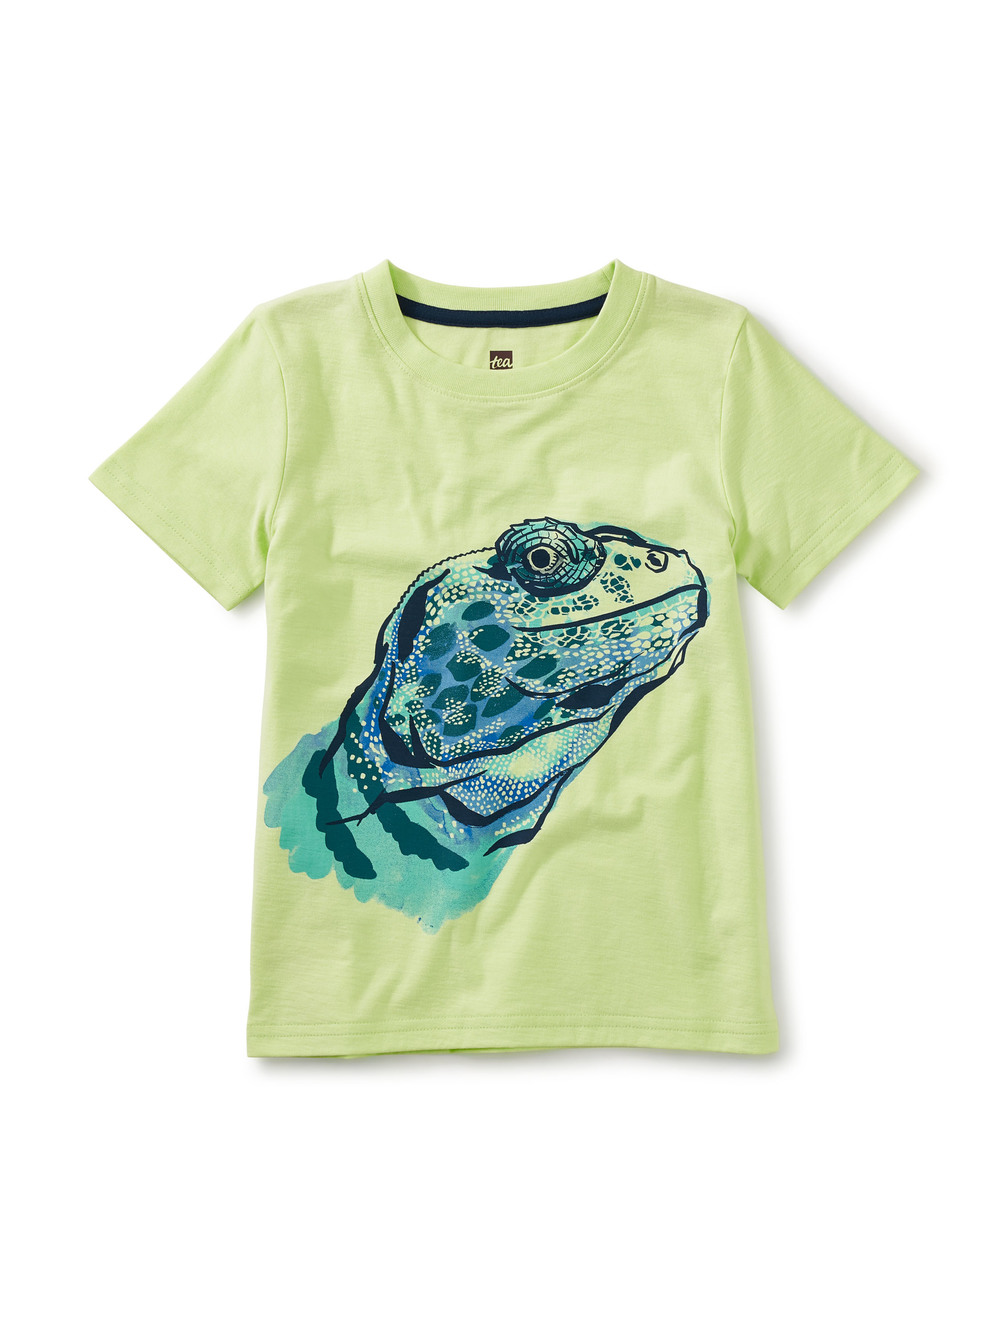 Larry the Lizard Graphic Tee